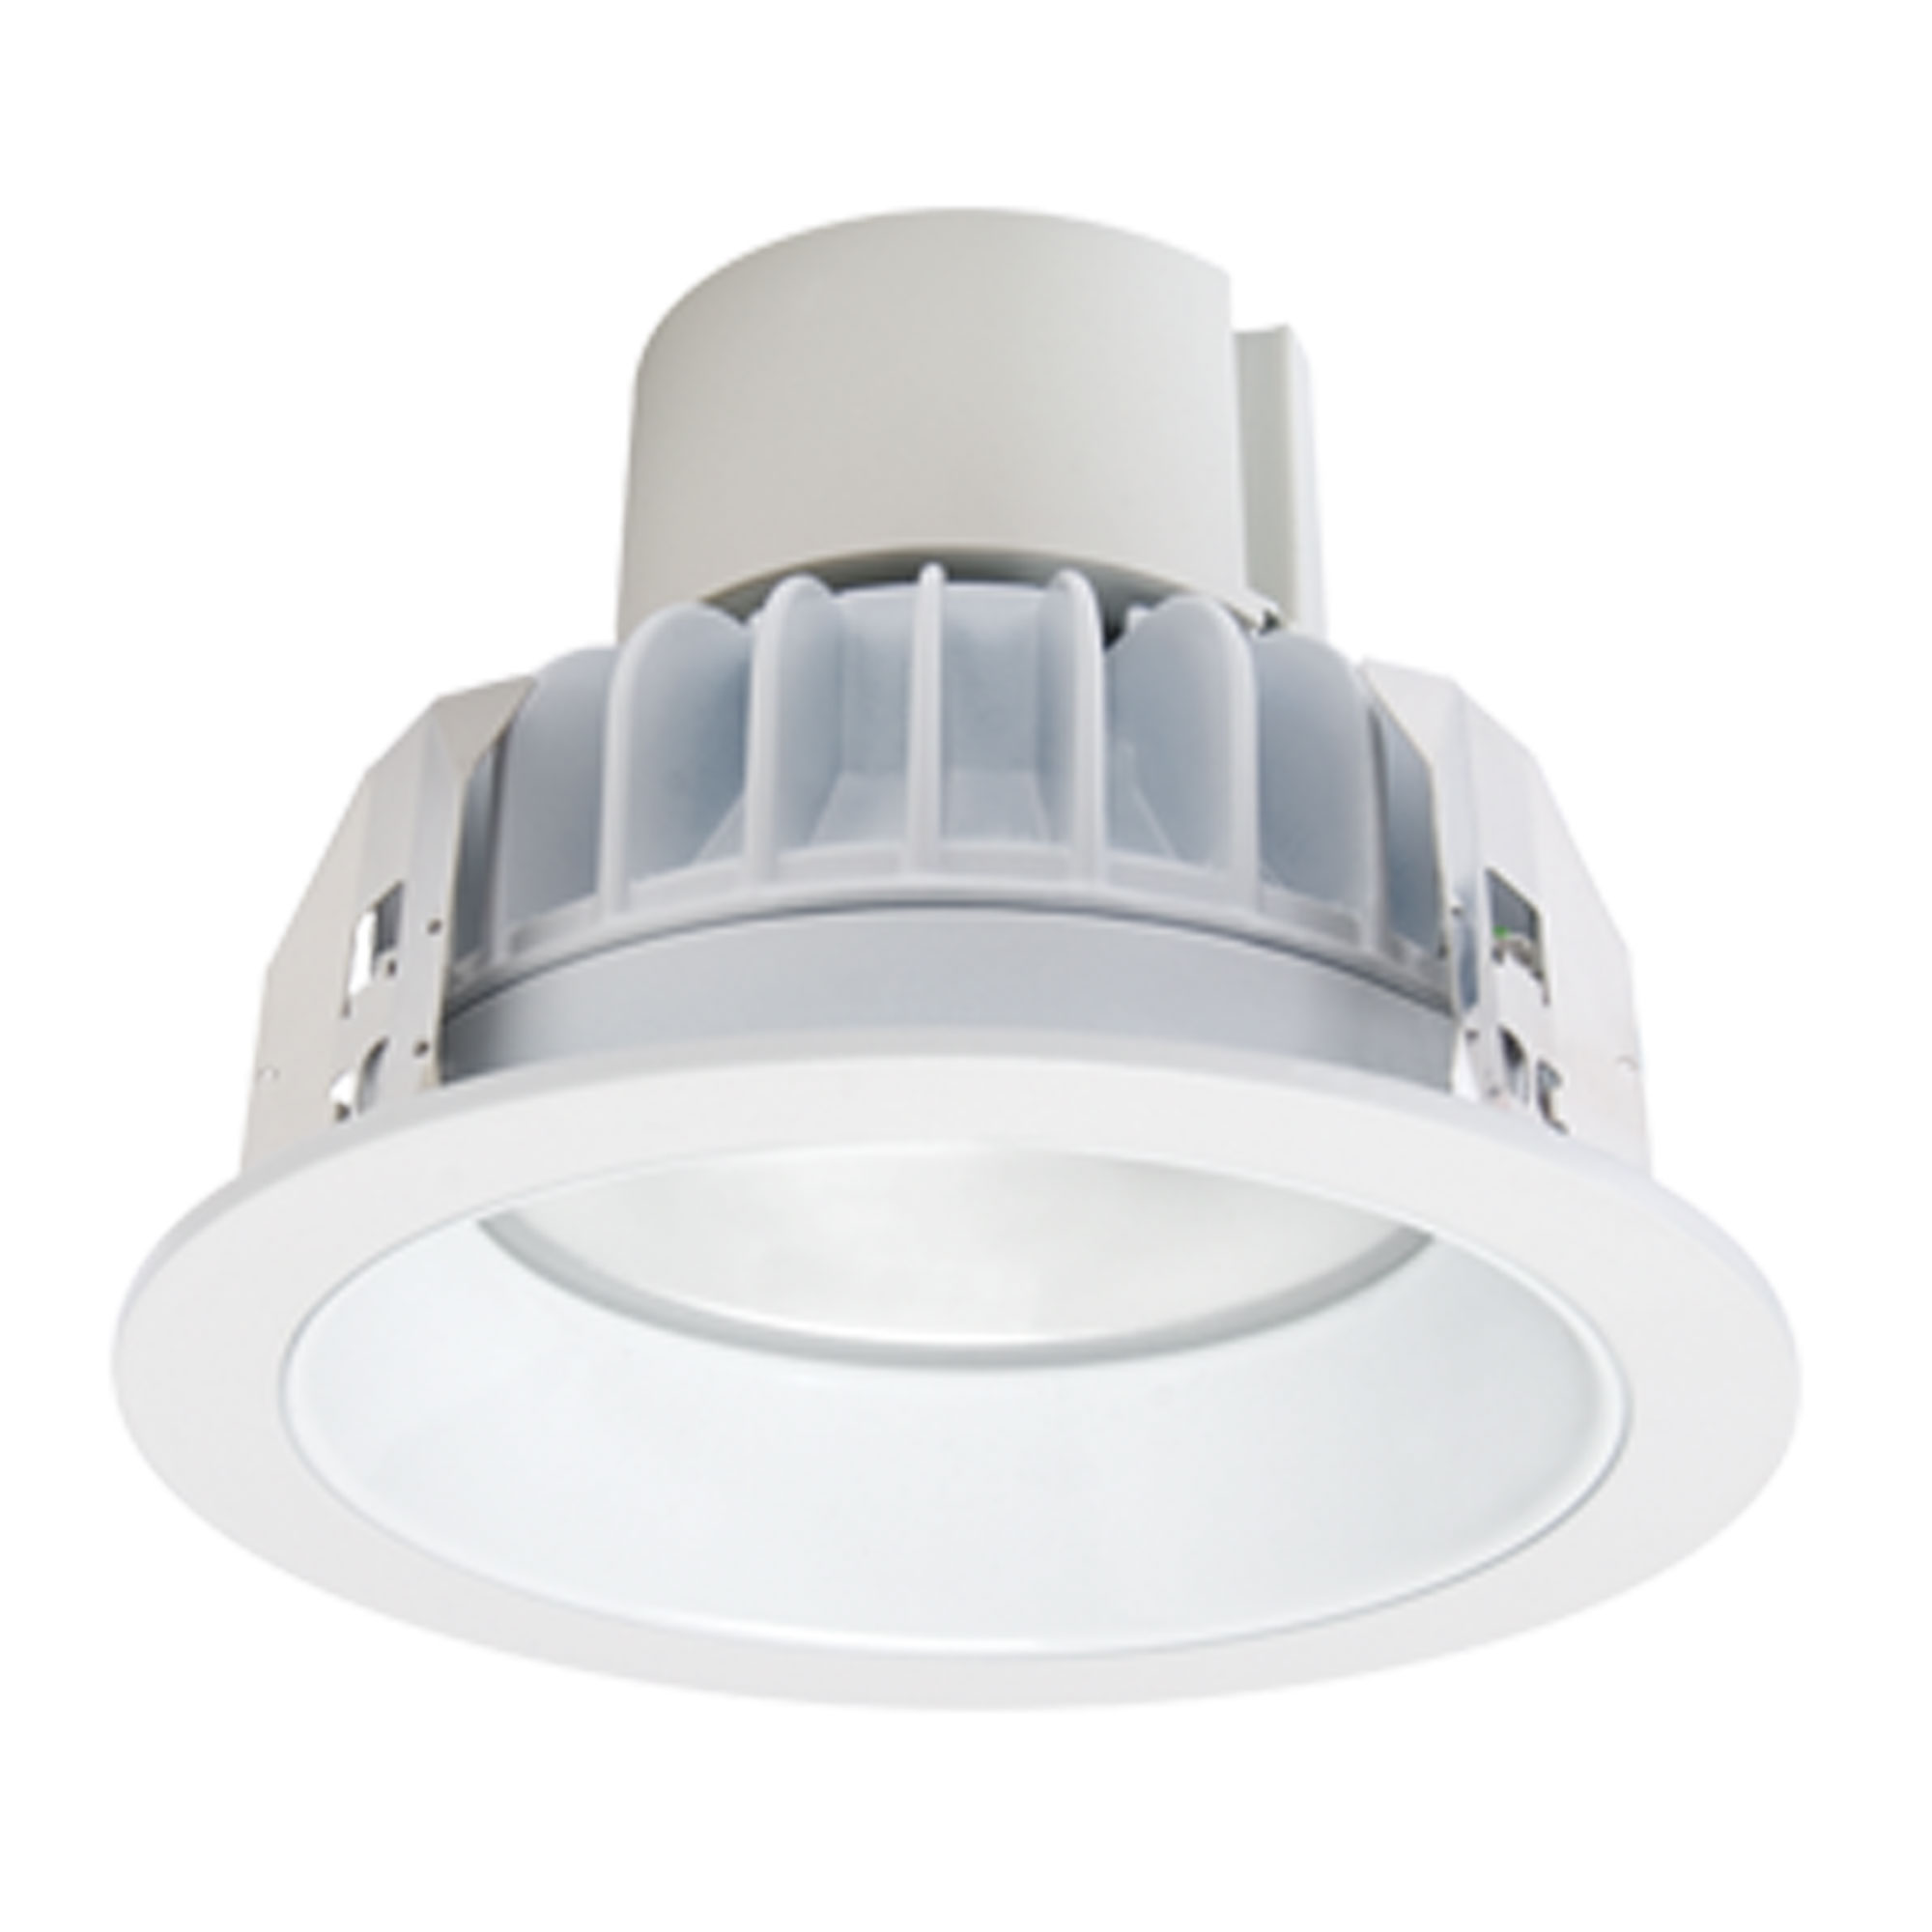 4 Series 650lm Retrofit Recessed Reflector By Elite Led Lighting 847801051981